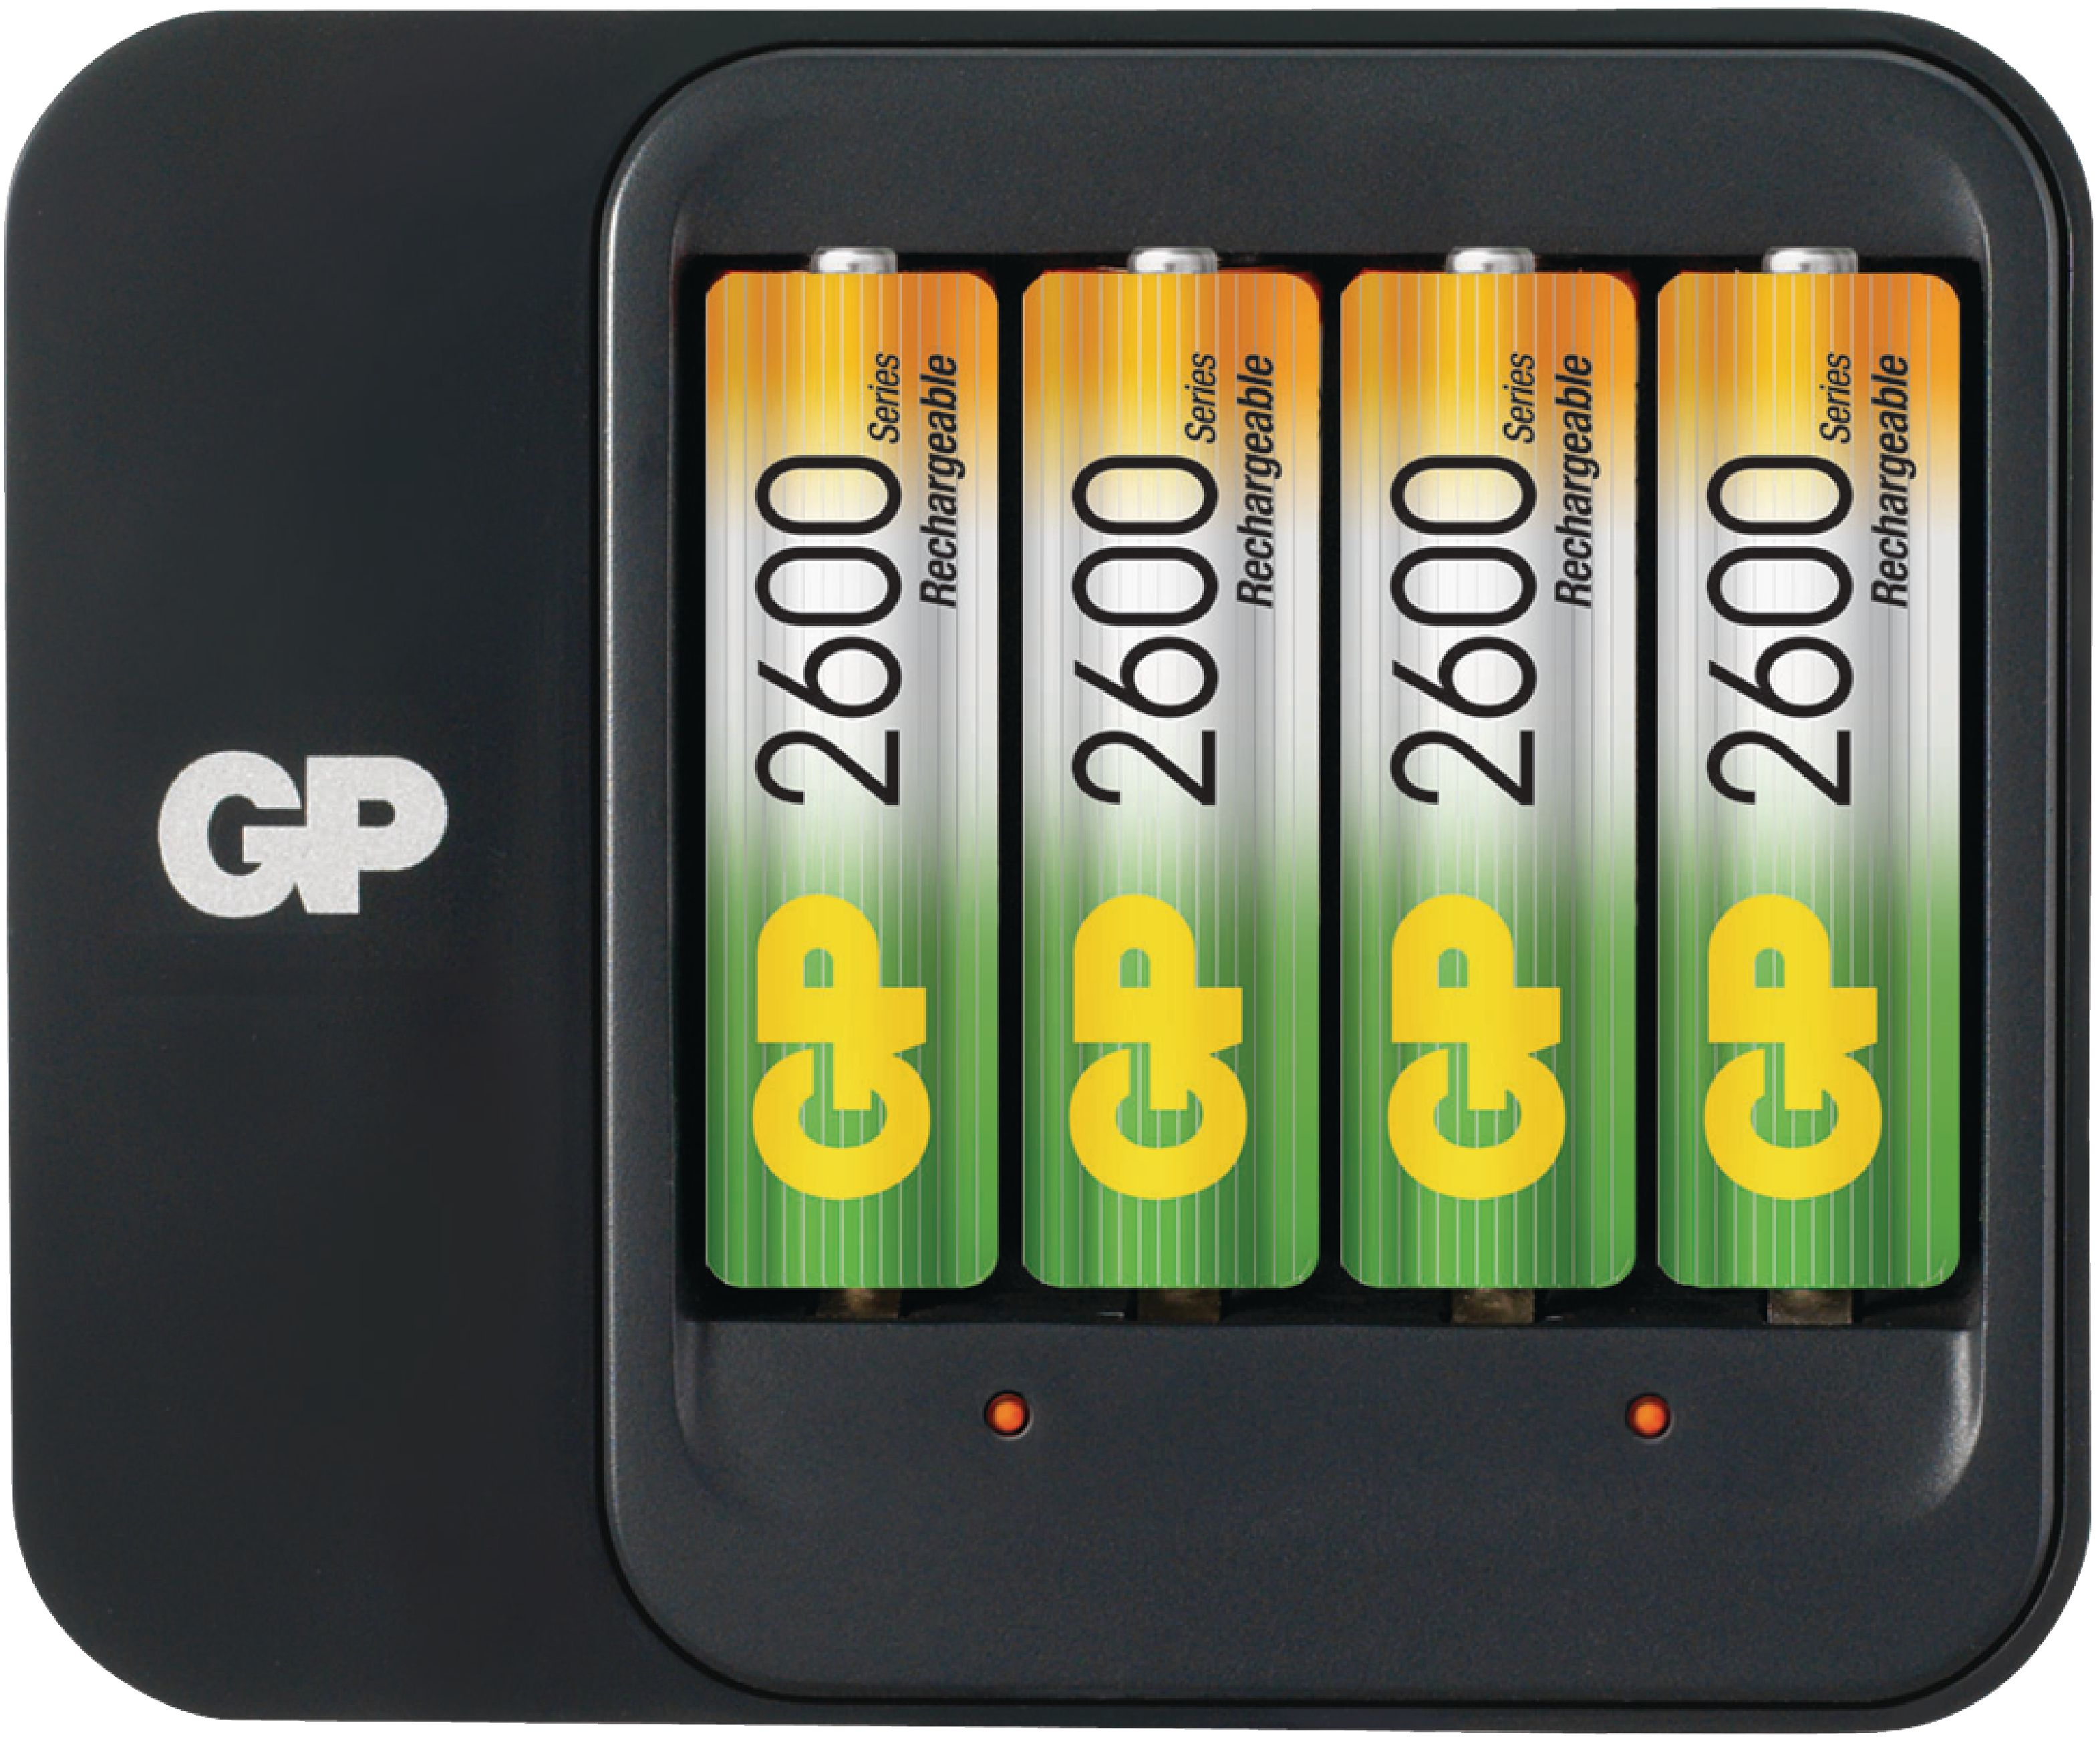 gp chm550 gp nimh battery charger aa aaa 4x aa hr6 2600 mah electronic. Black Bedroom Furniture Sets. Home Design Ideas